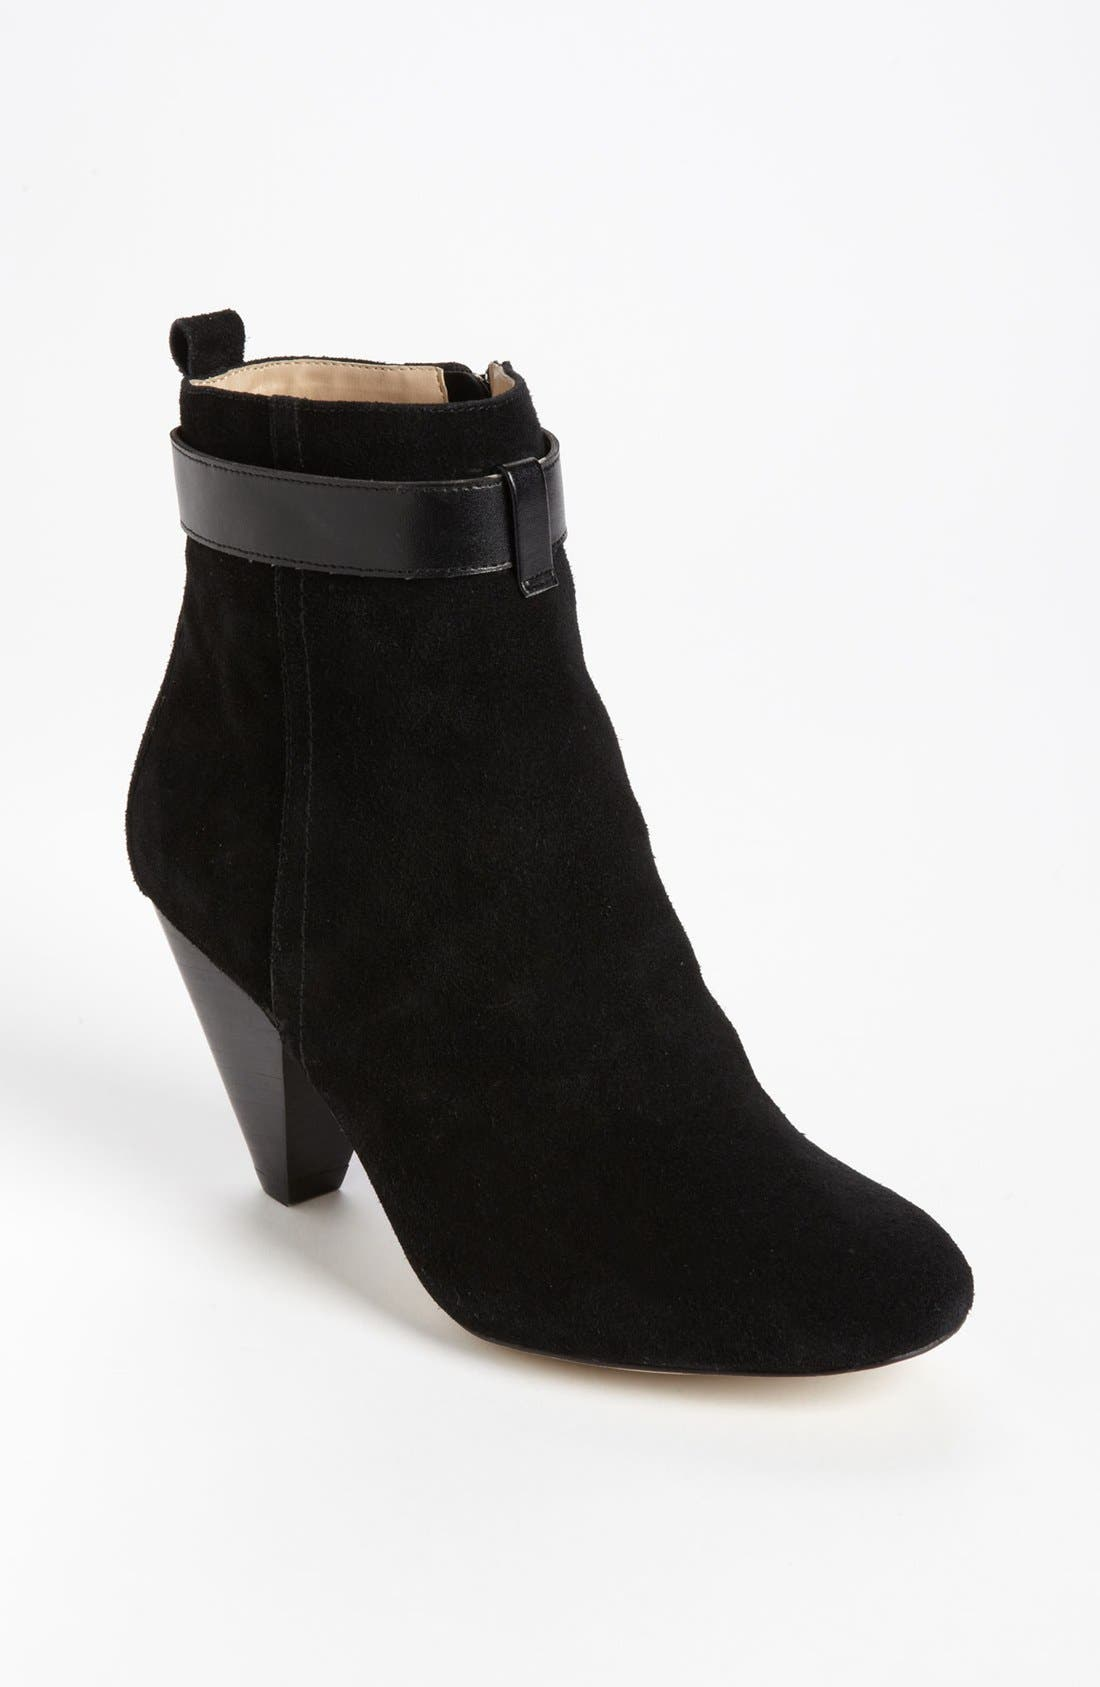 Main Image - Julianne Hough for Sole Society 'Vivienne' Boot